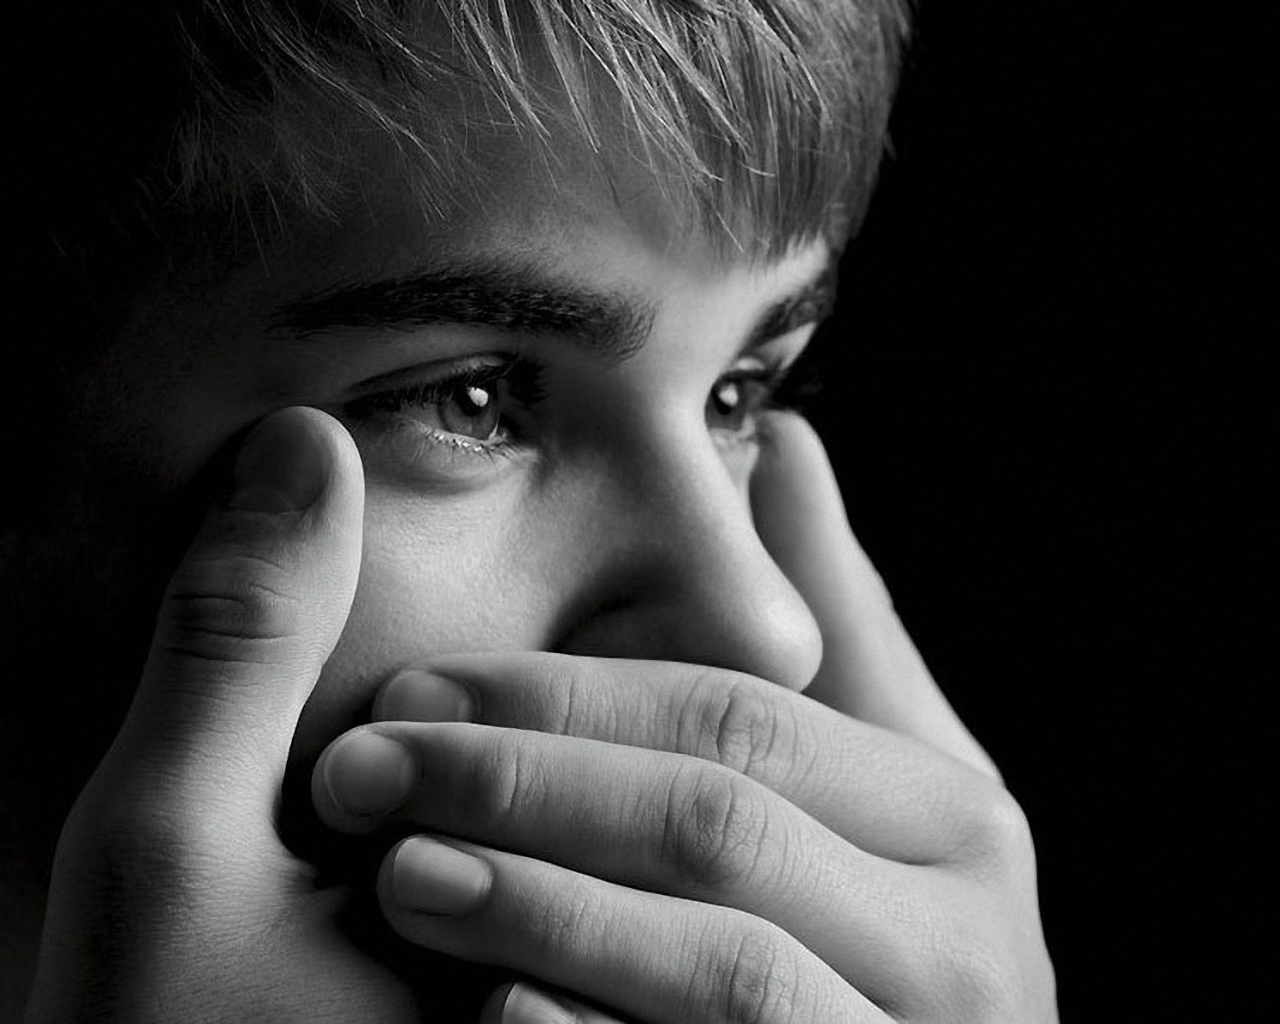 click to free download the wallpaper--Man Wallpaper, Justin Bieber with Shinning Eyes, Mouth Covered with Finger 1280X1024 free wallpaper download